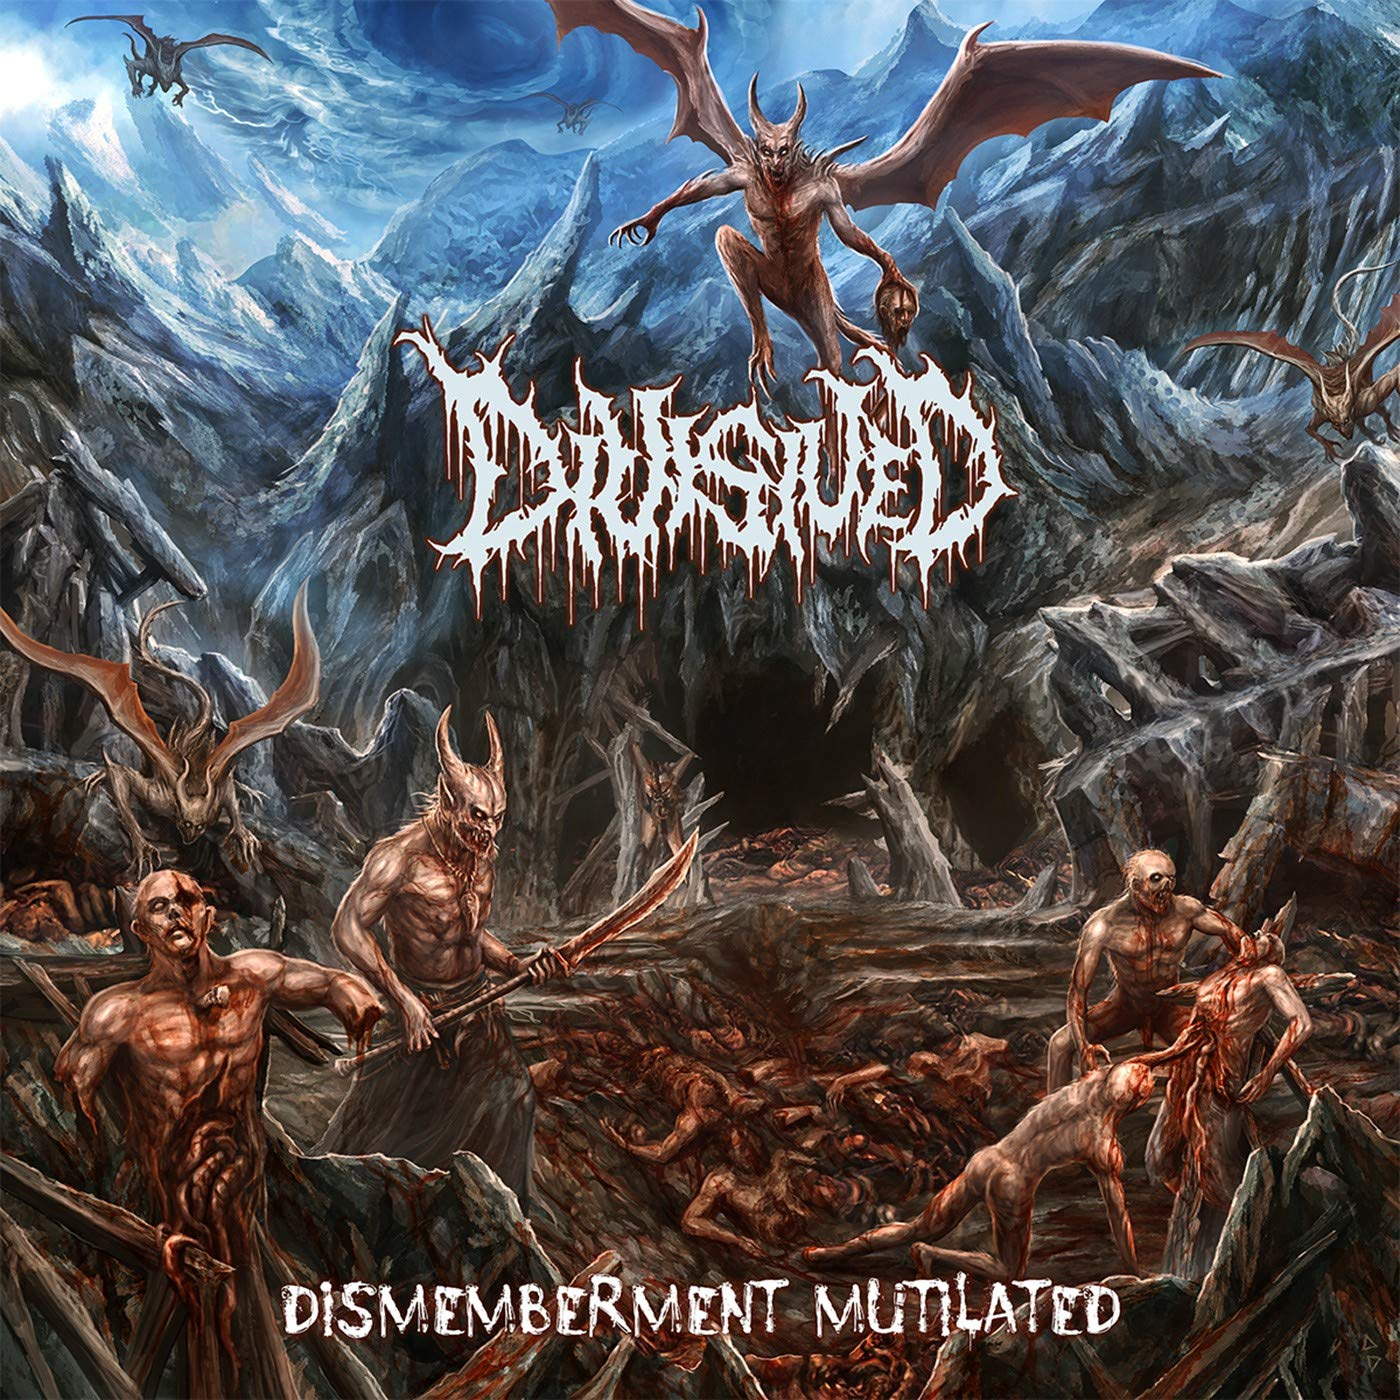 Divisived - Dismemberment Mutilated (2020) [FLAC] Download